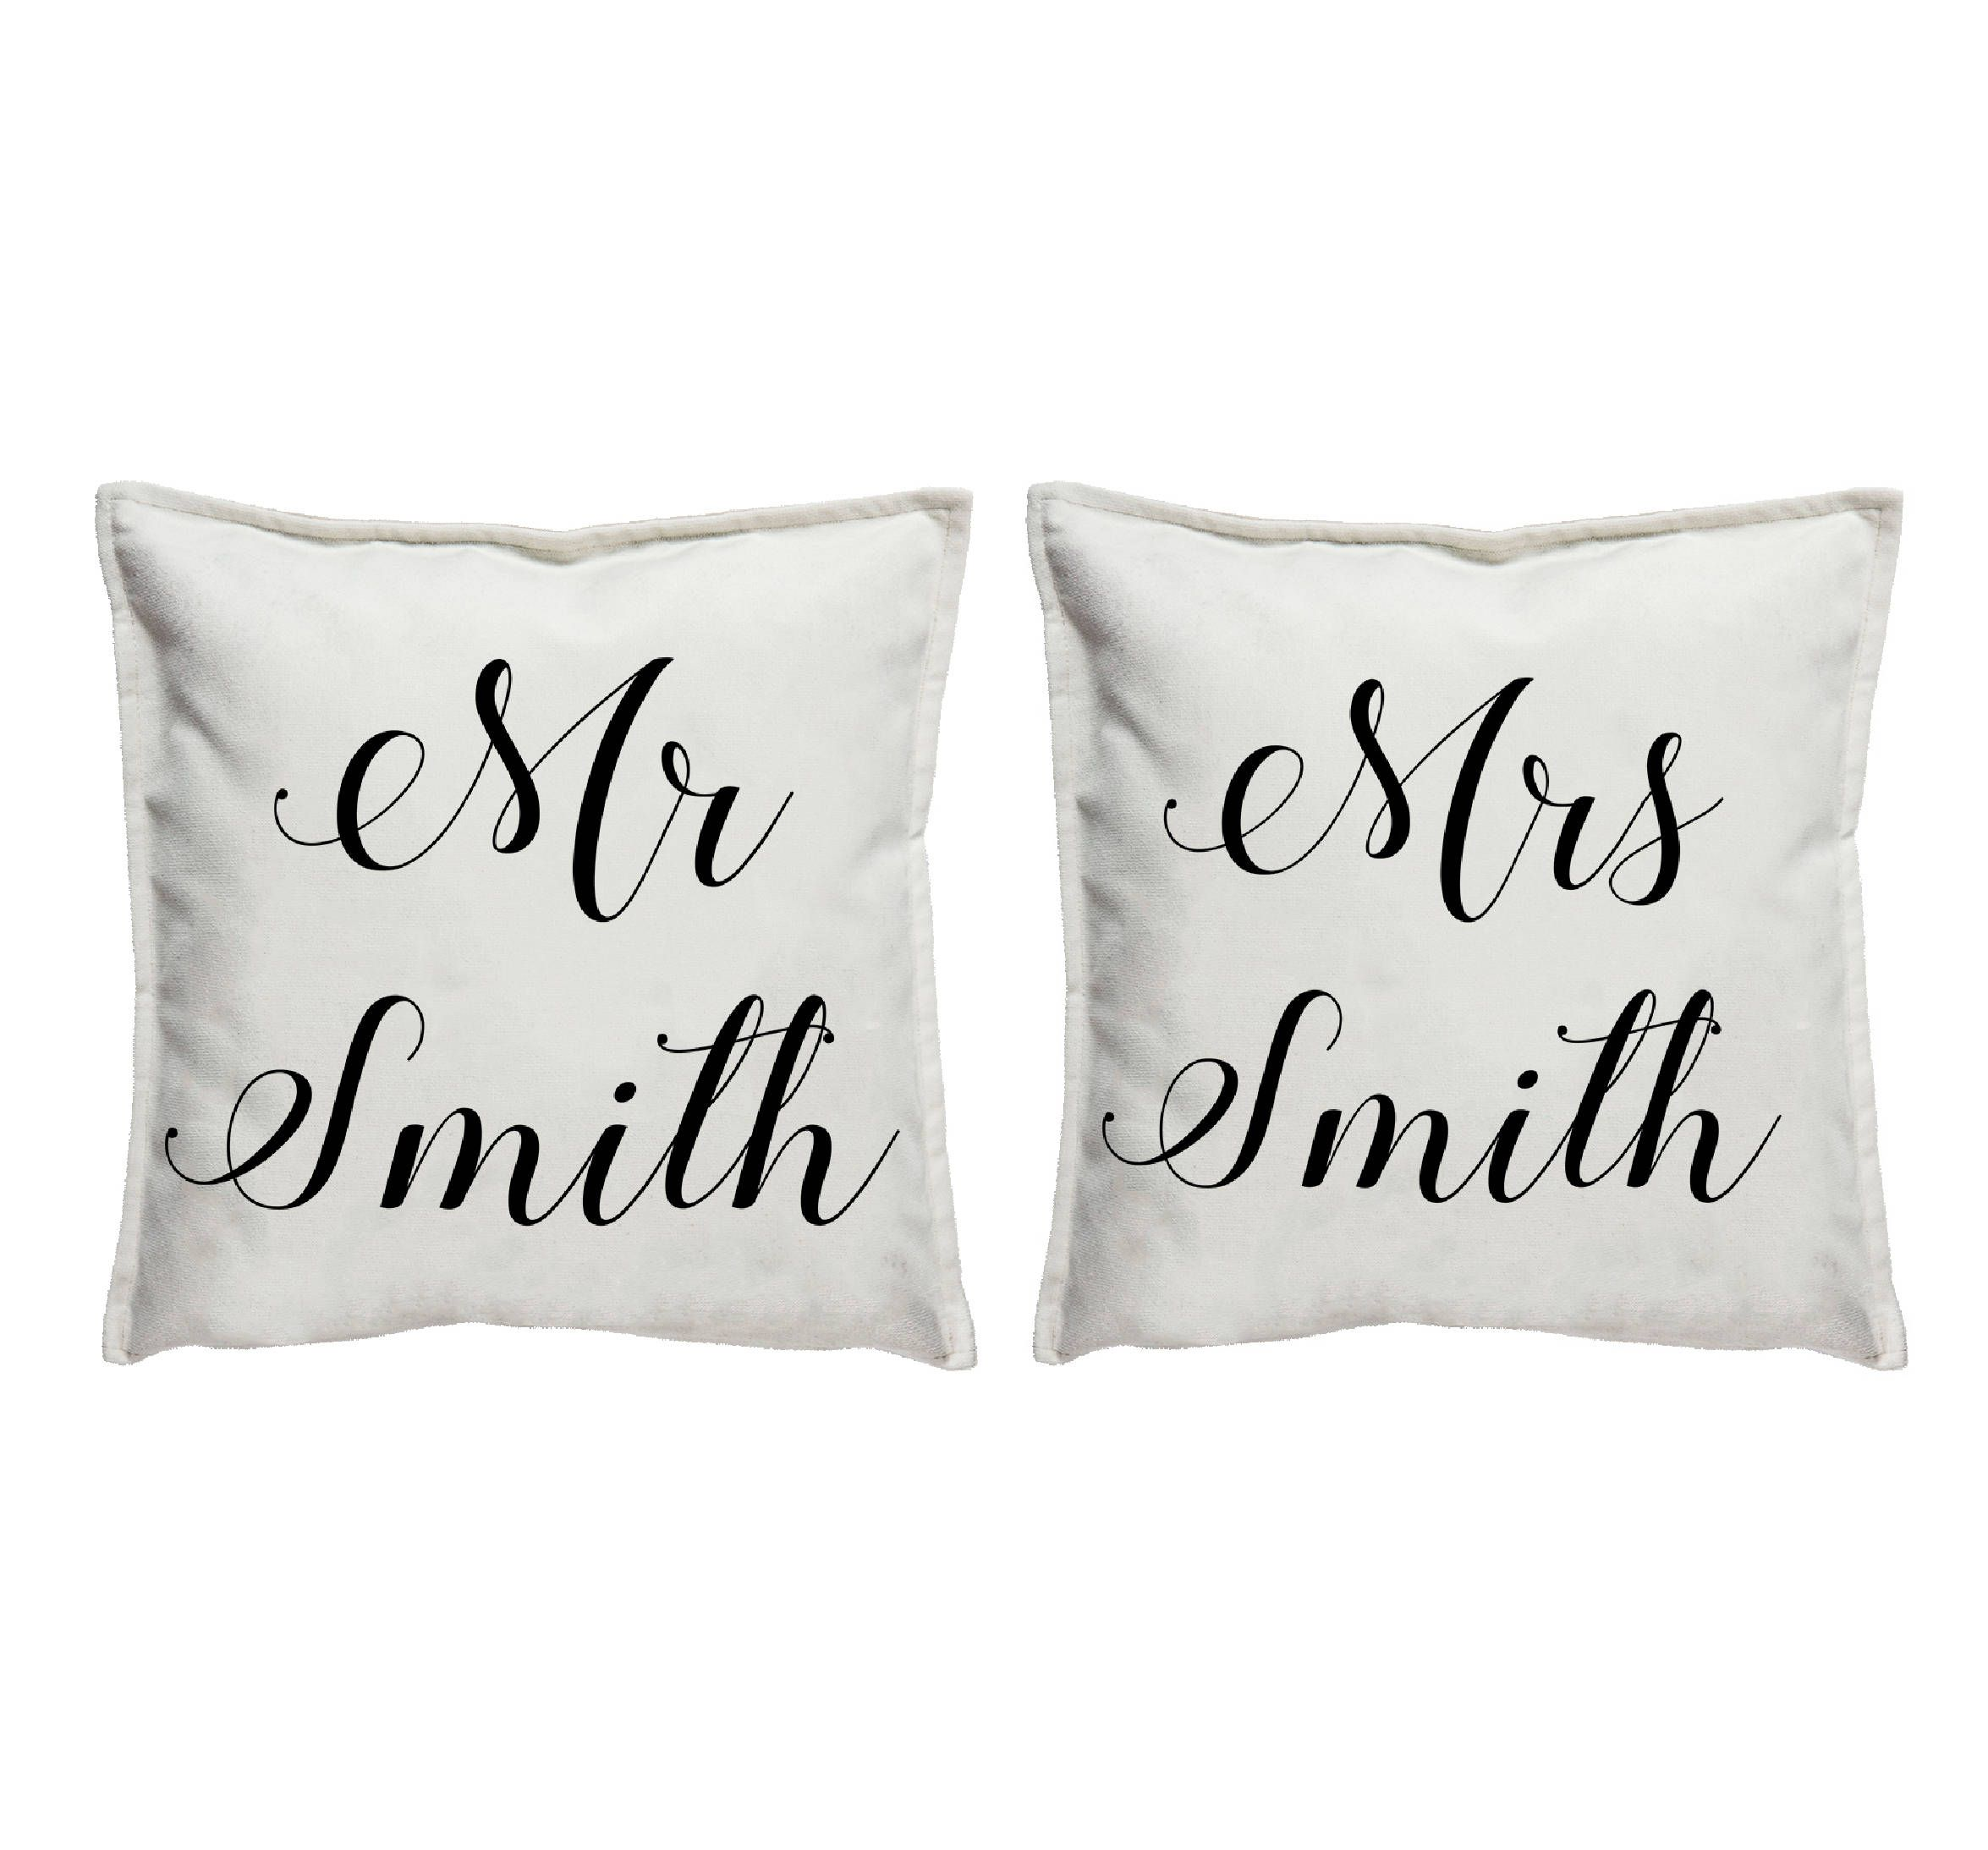 pillows embroidery baby rmr monogrammed block personalized custom lettering pillow